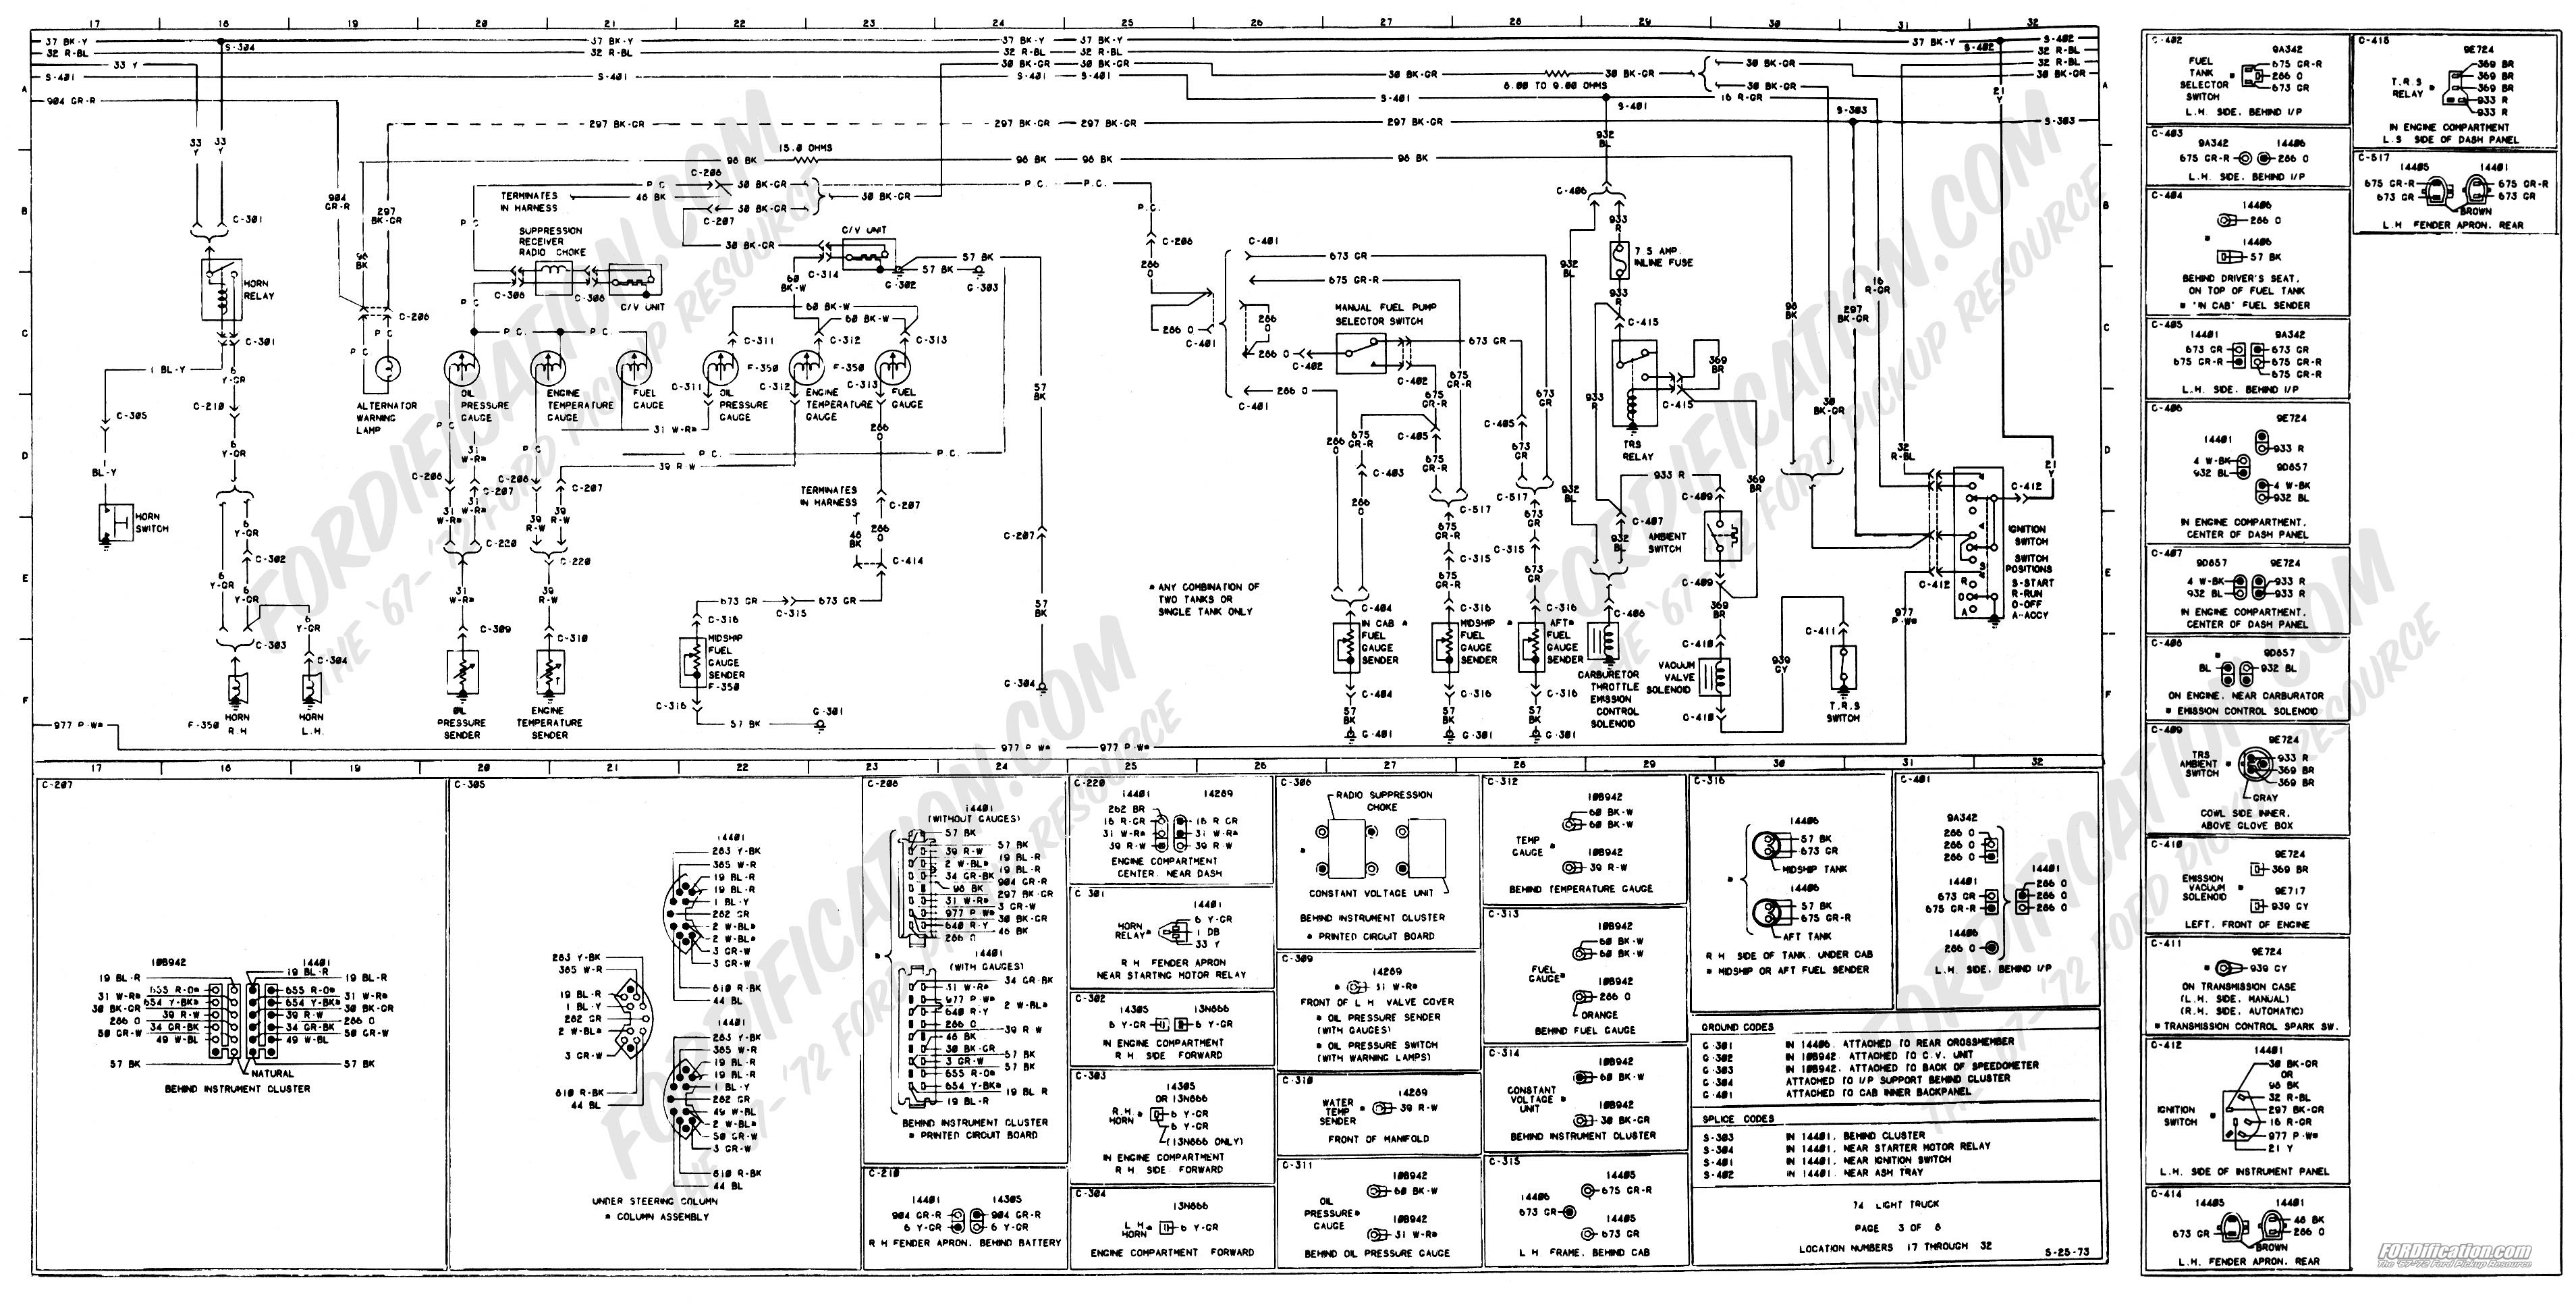 Ford 460 Engine Diagram 1973 1979 ford Truck Wiring Diagrams & Schematics  fordification Of Ford 460